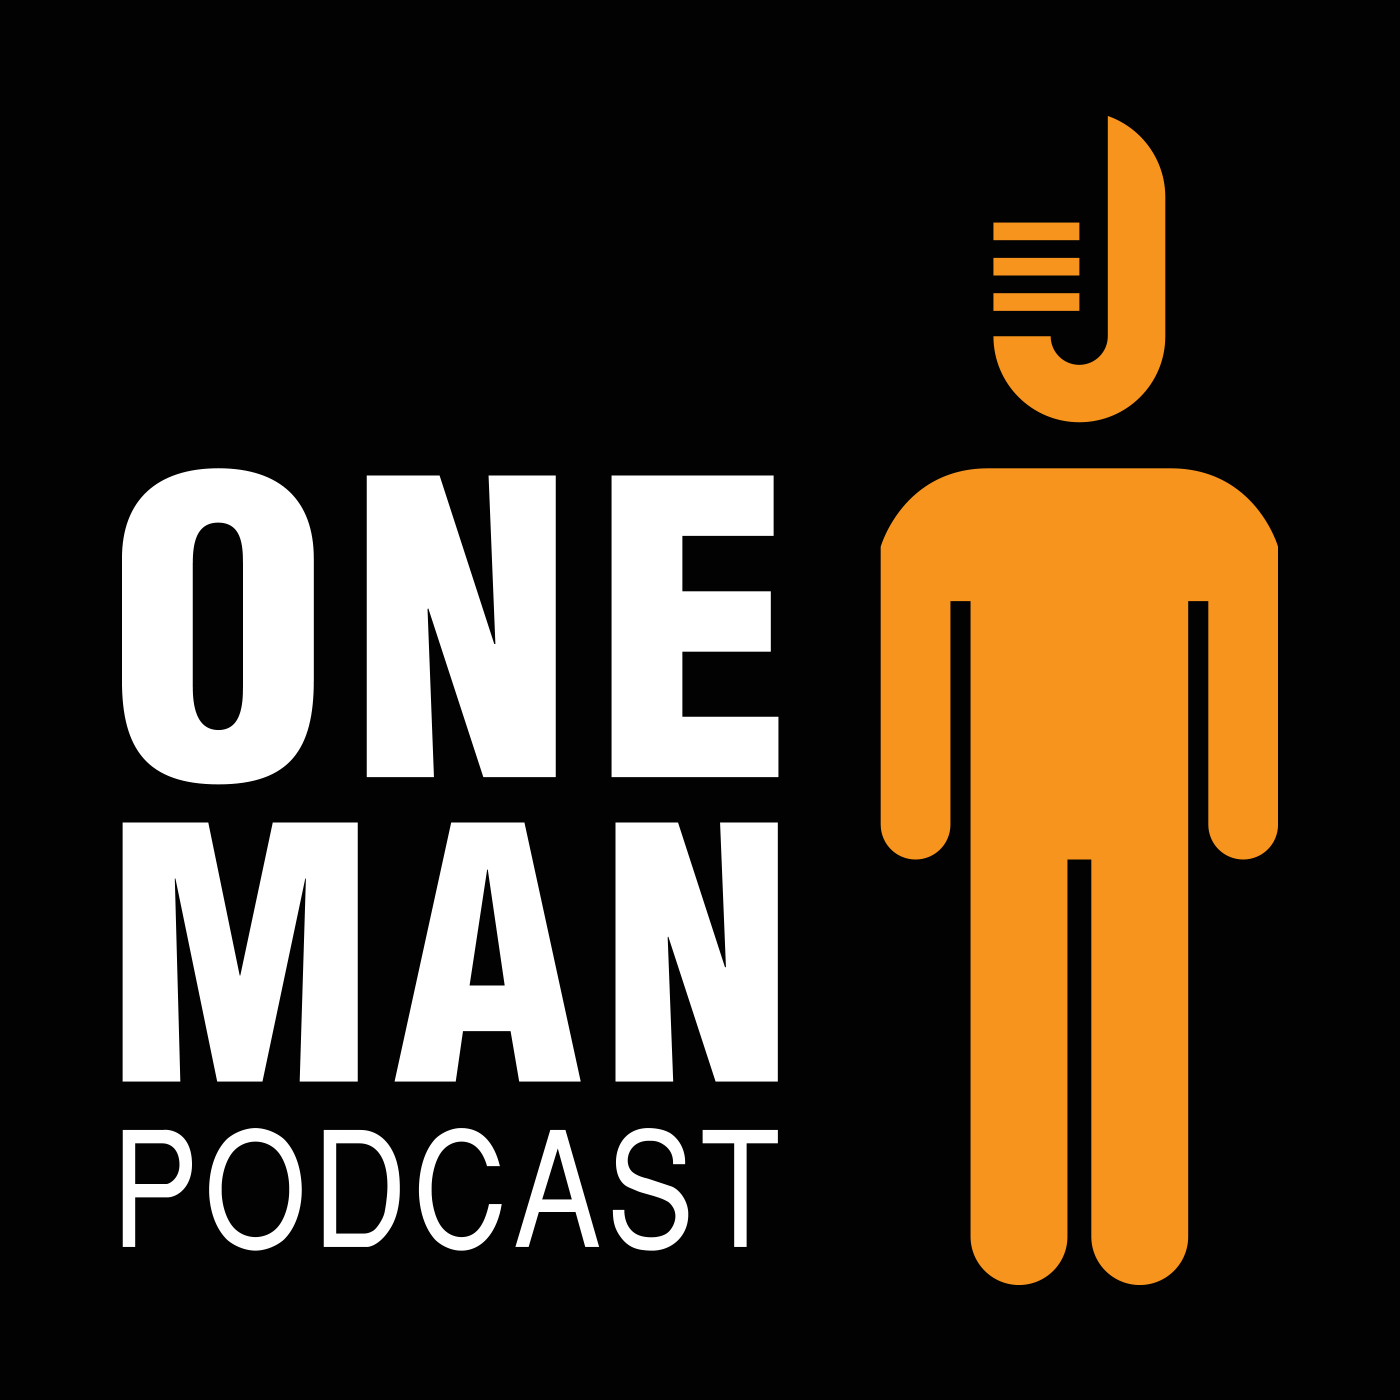 One Man Podcast Episode #106